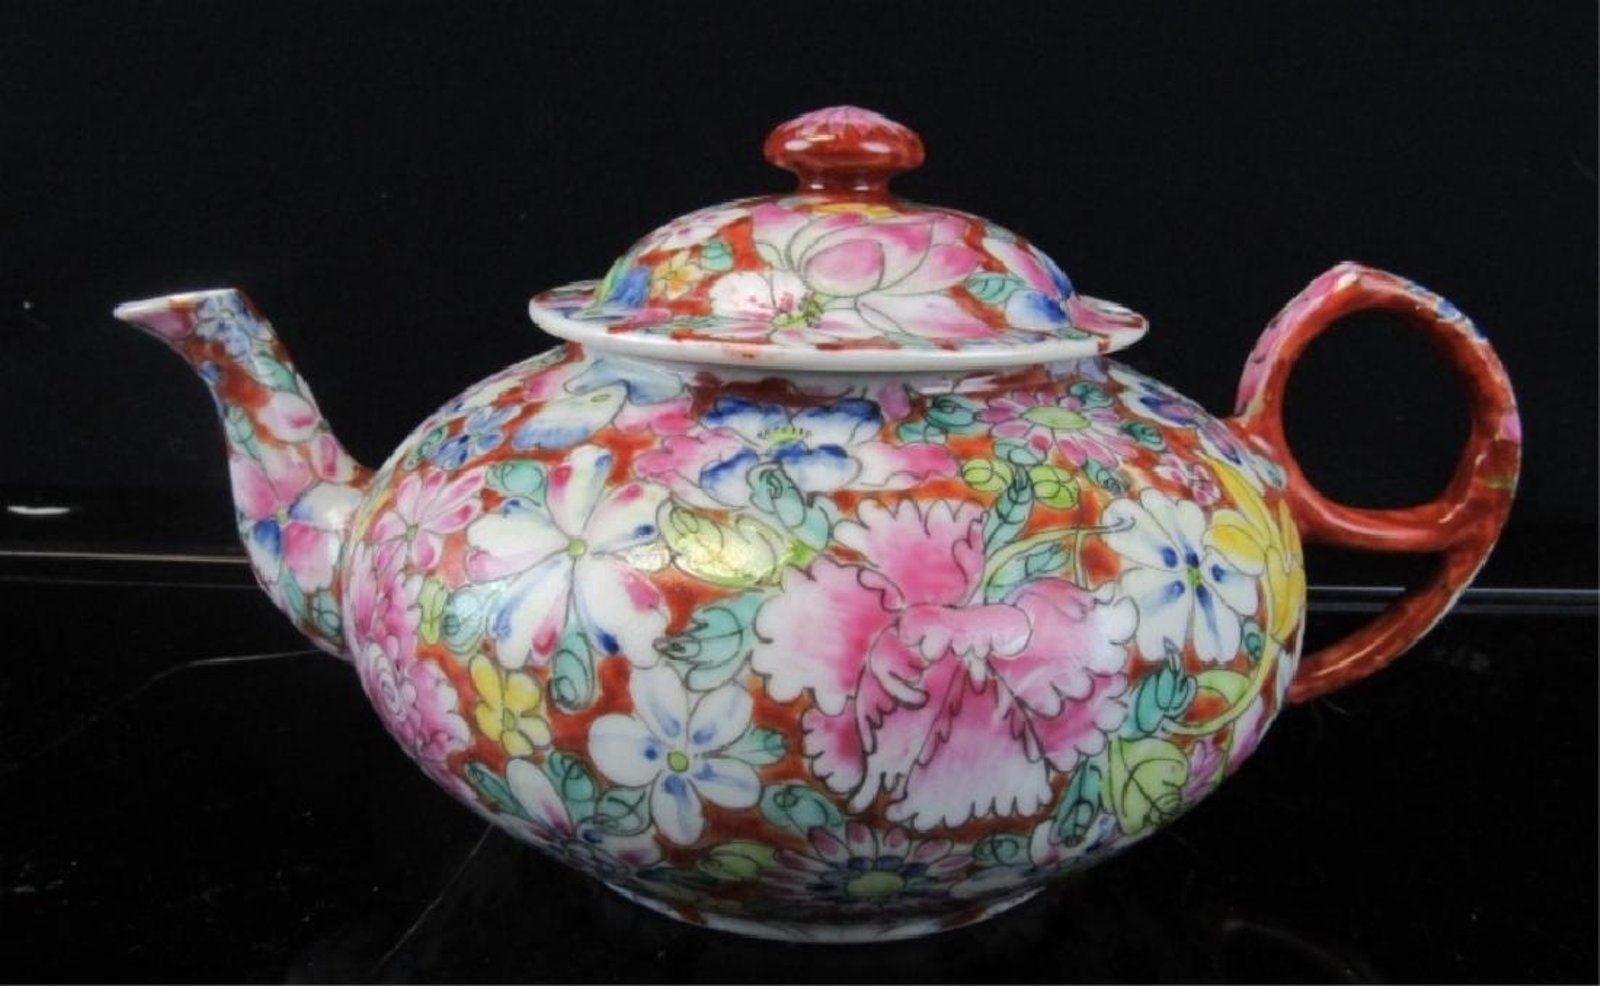 Beautiful Teapot Aqing Dynasty Enameled Porcelain Teapot On Tea Time